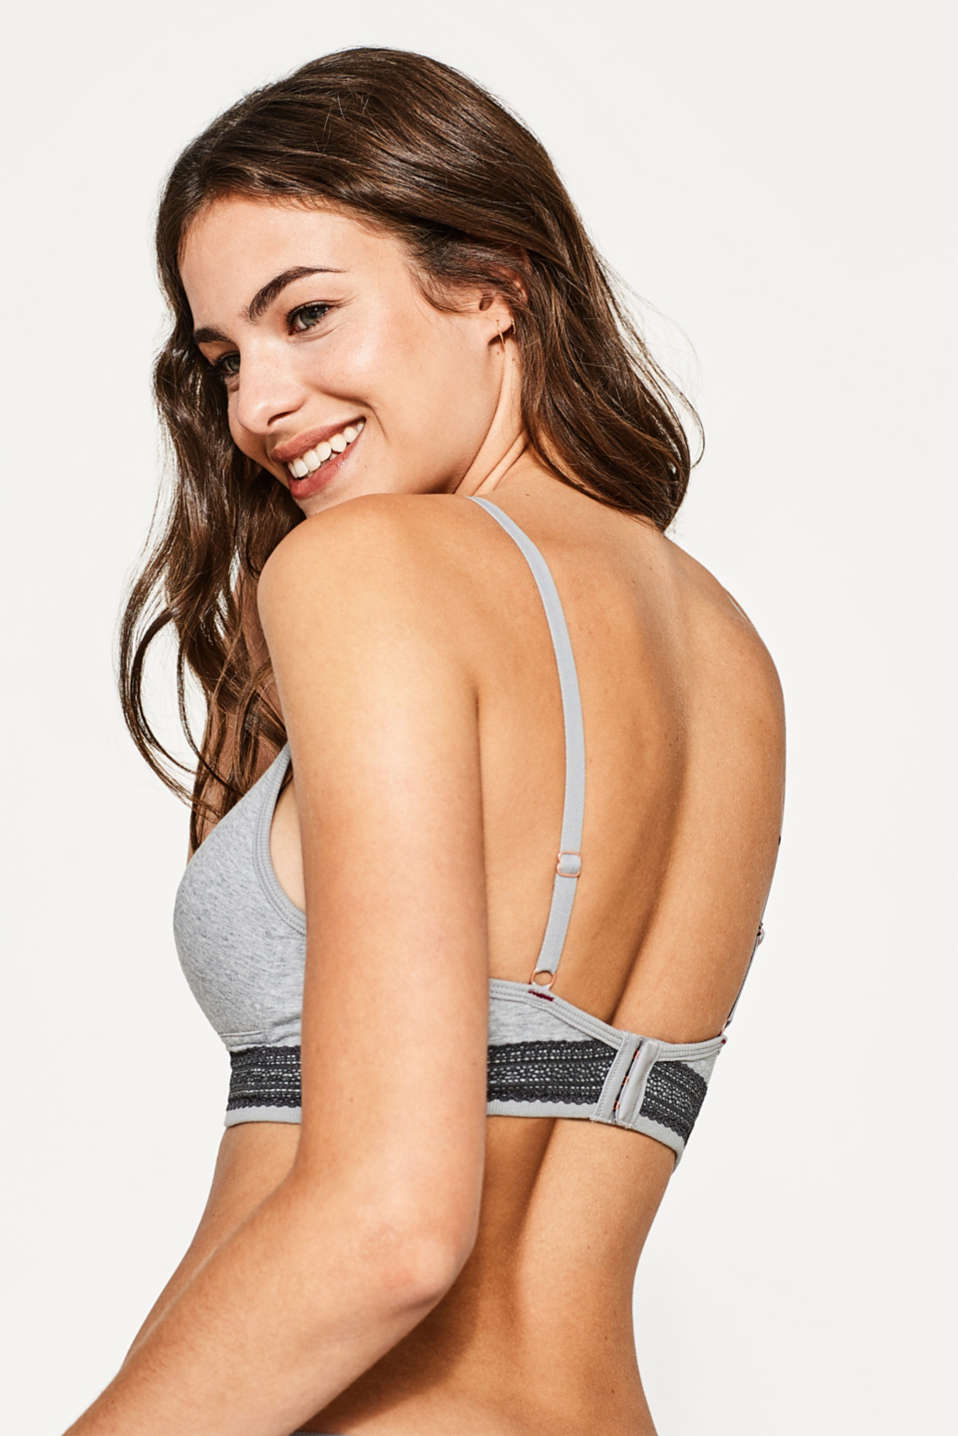 Padded non-wired bra made of jersey